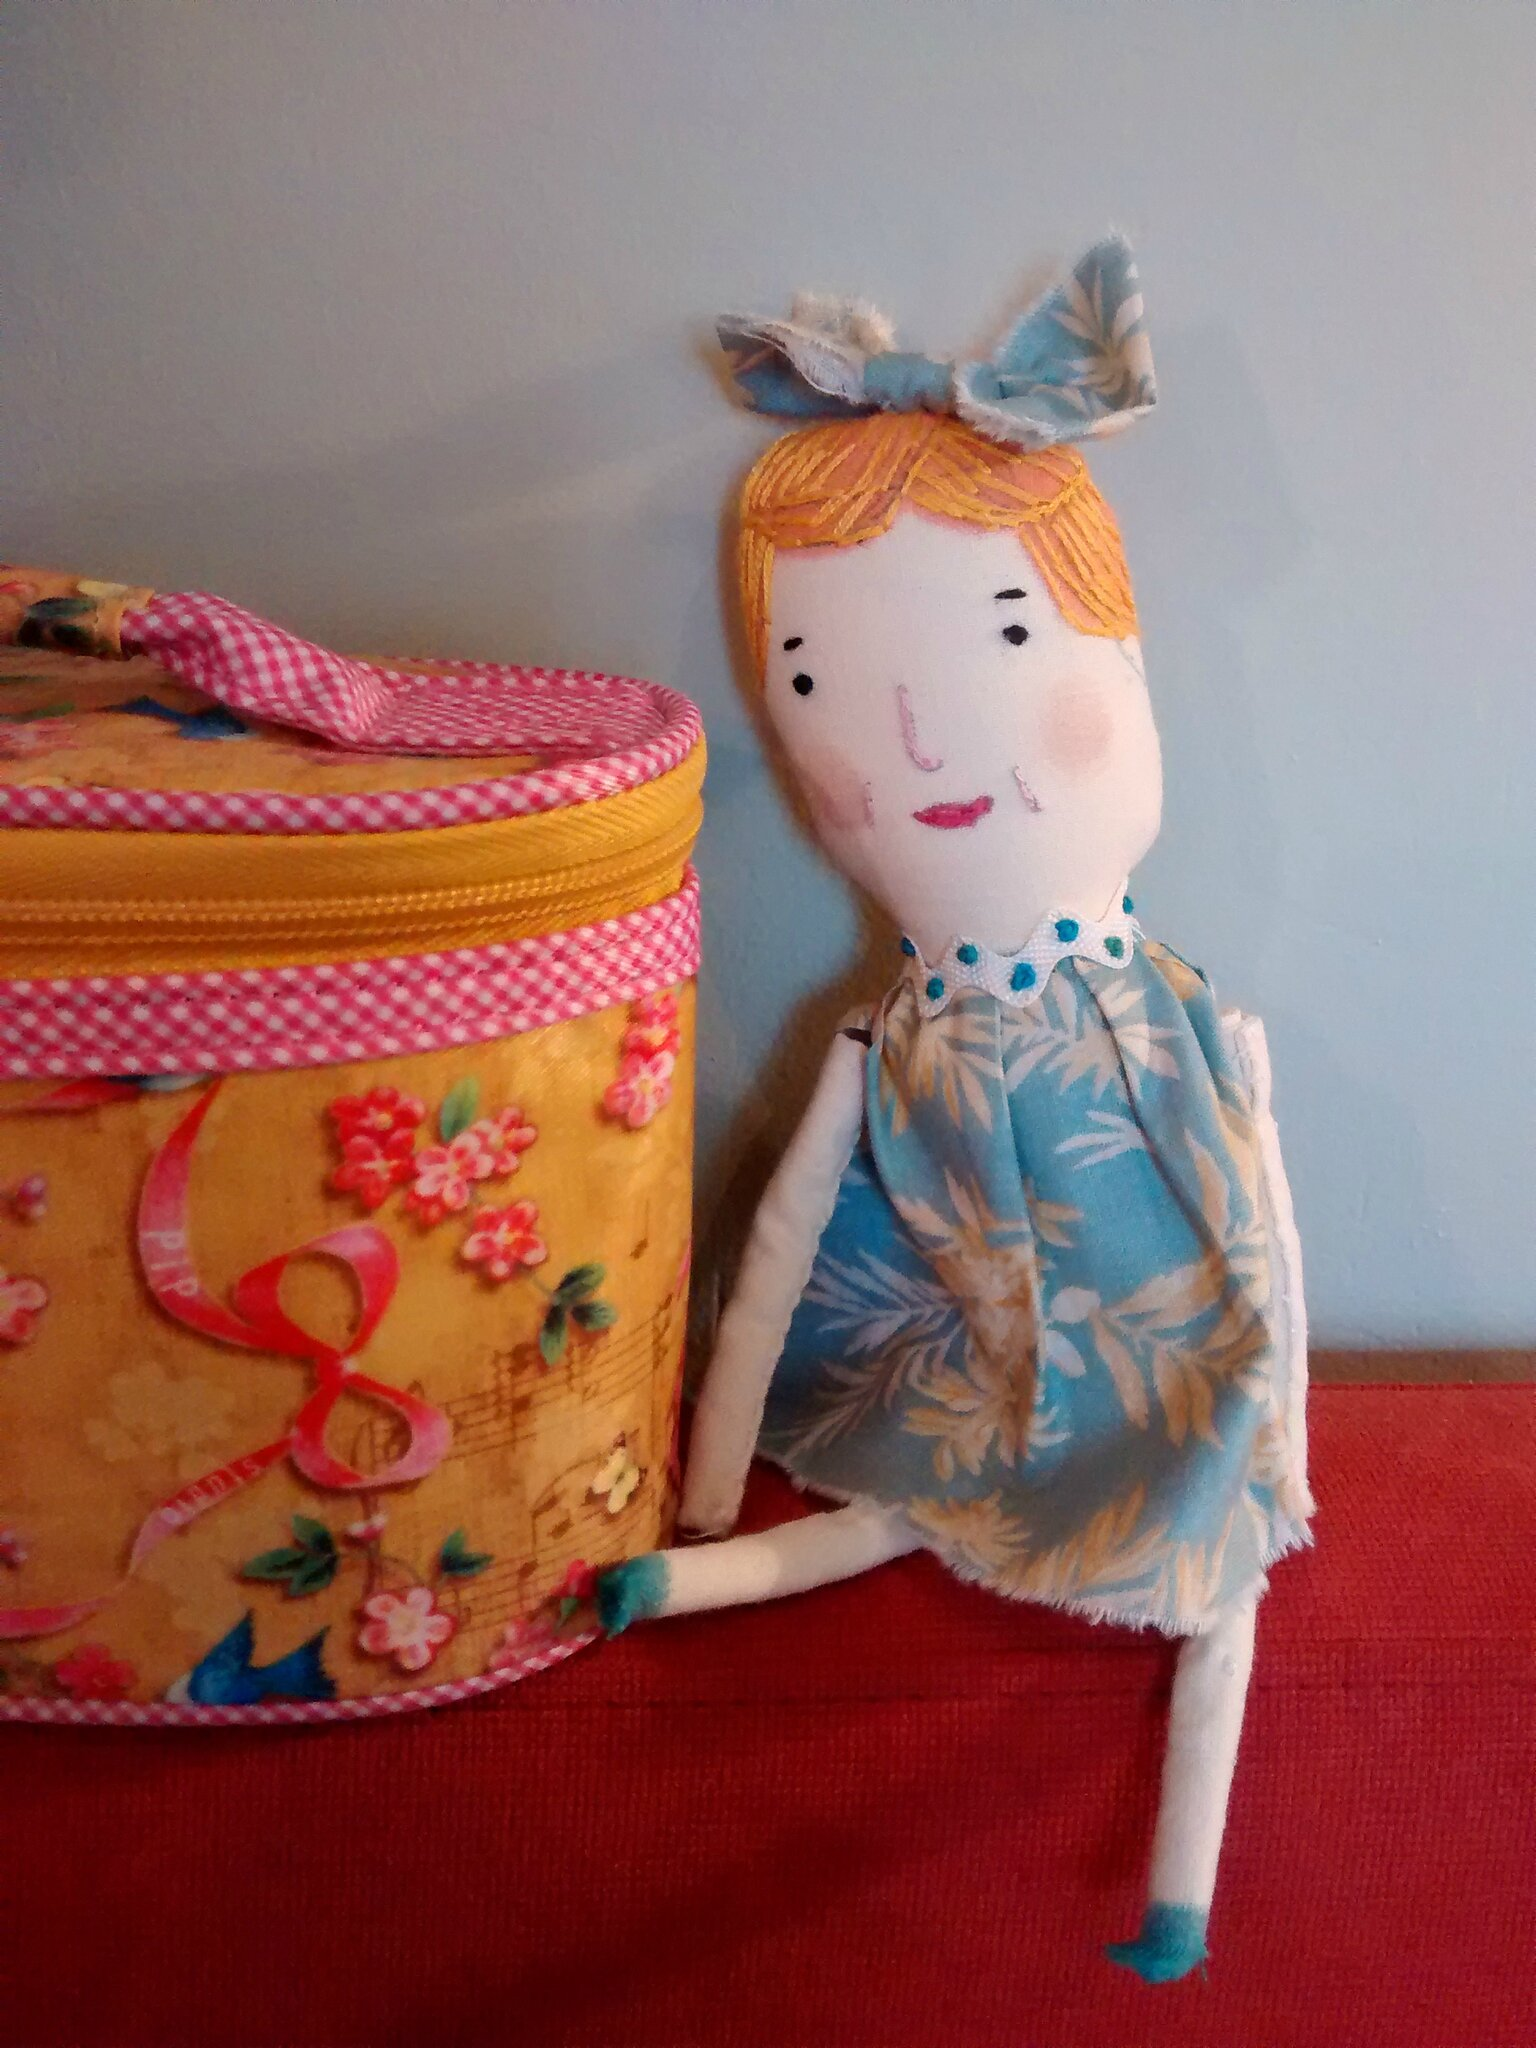 I have made some dolls this month